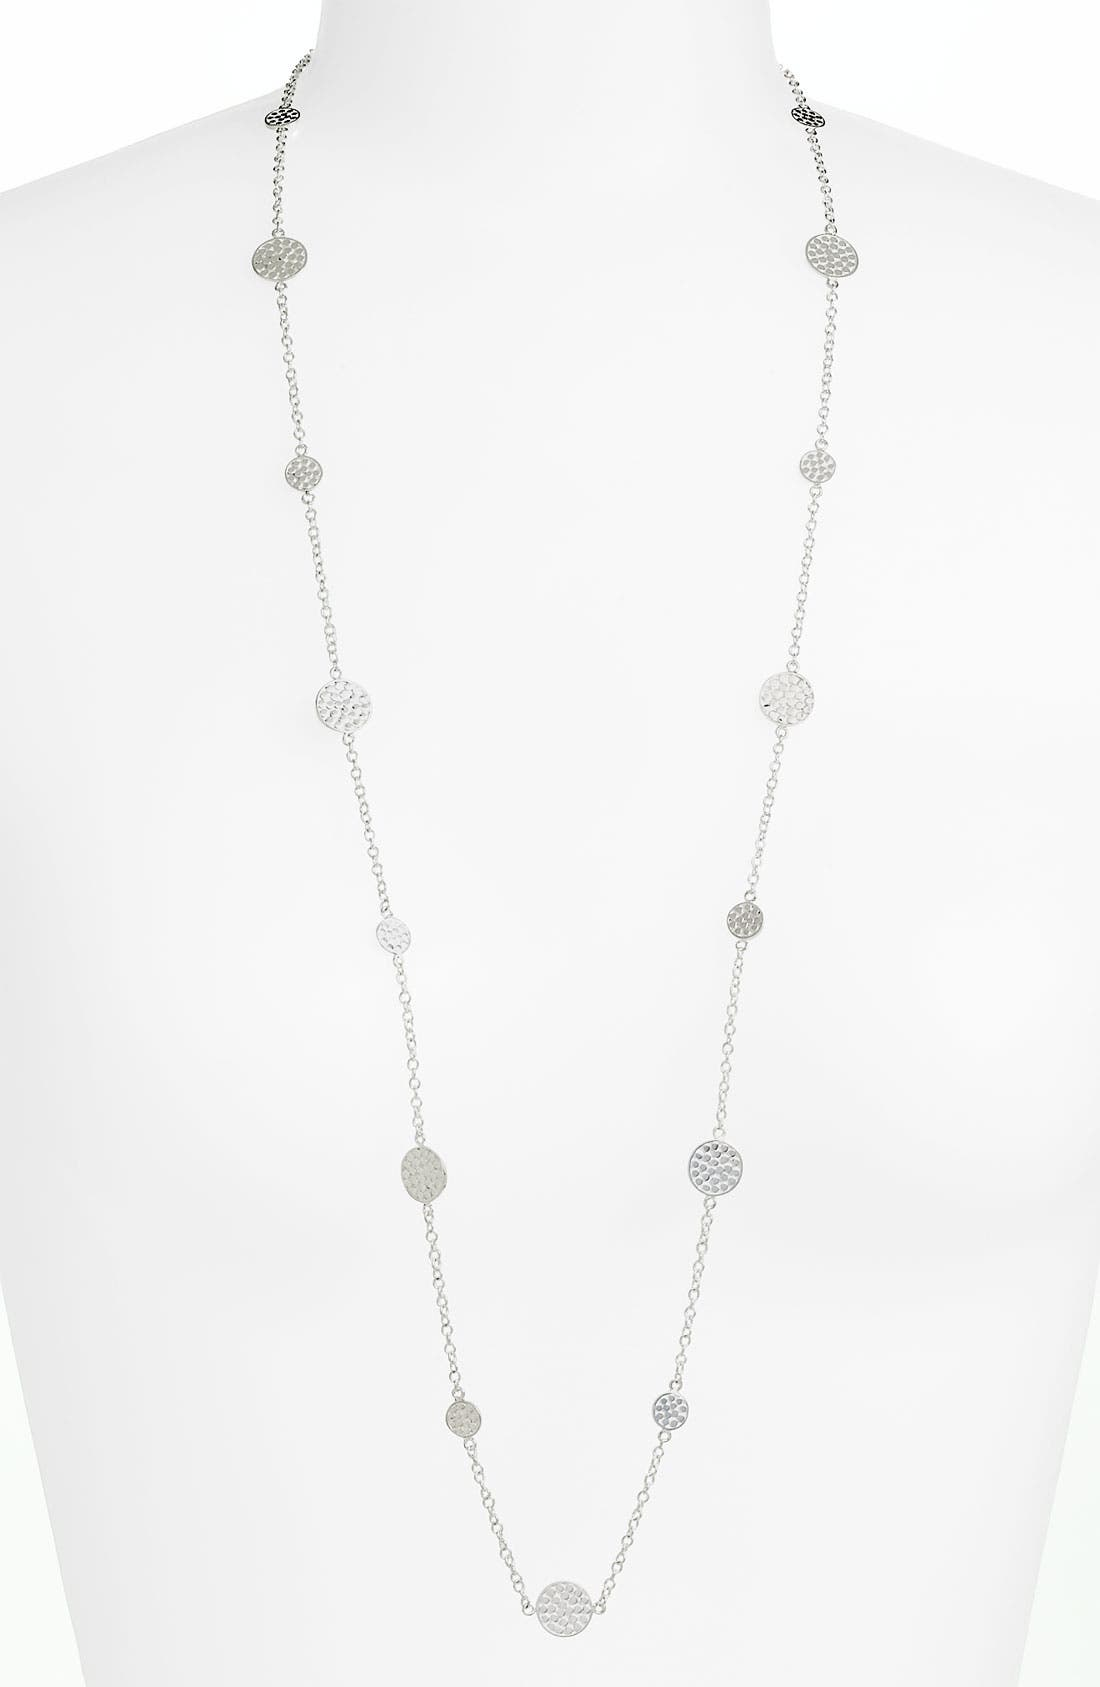 Main Image - Anna Beck 'Bali' Long Strand Disc Necklace